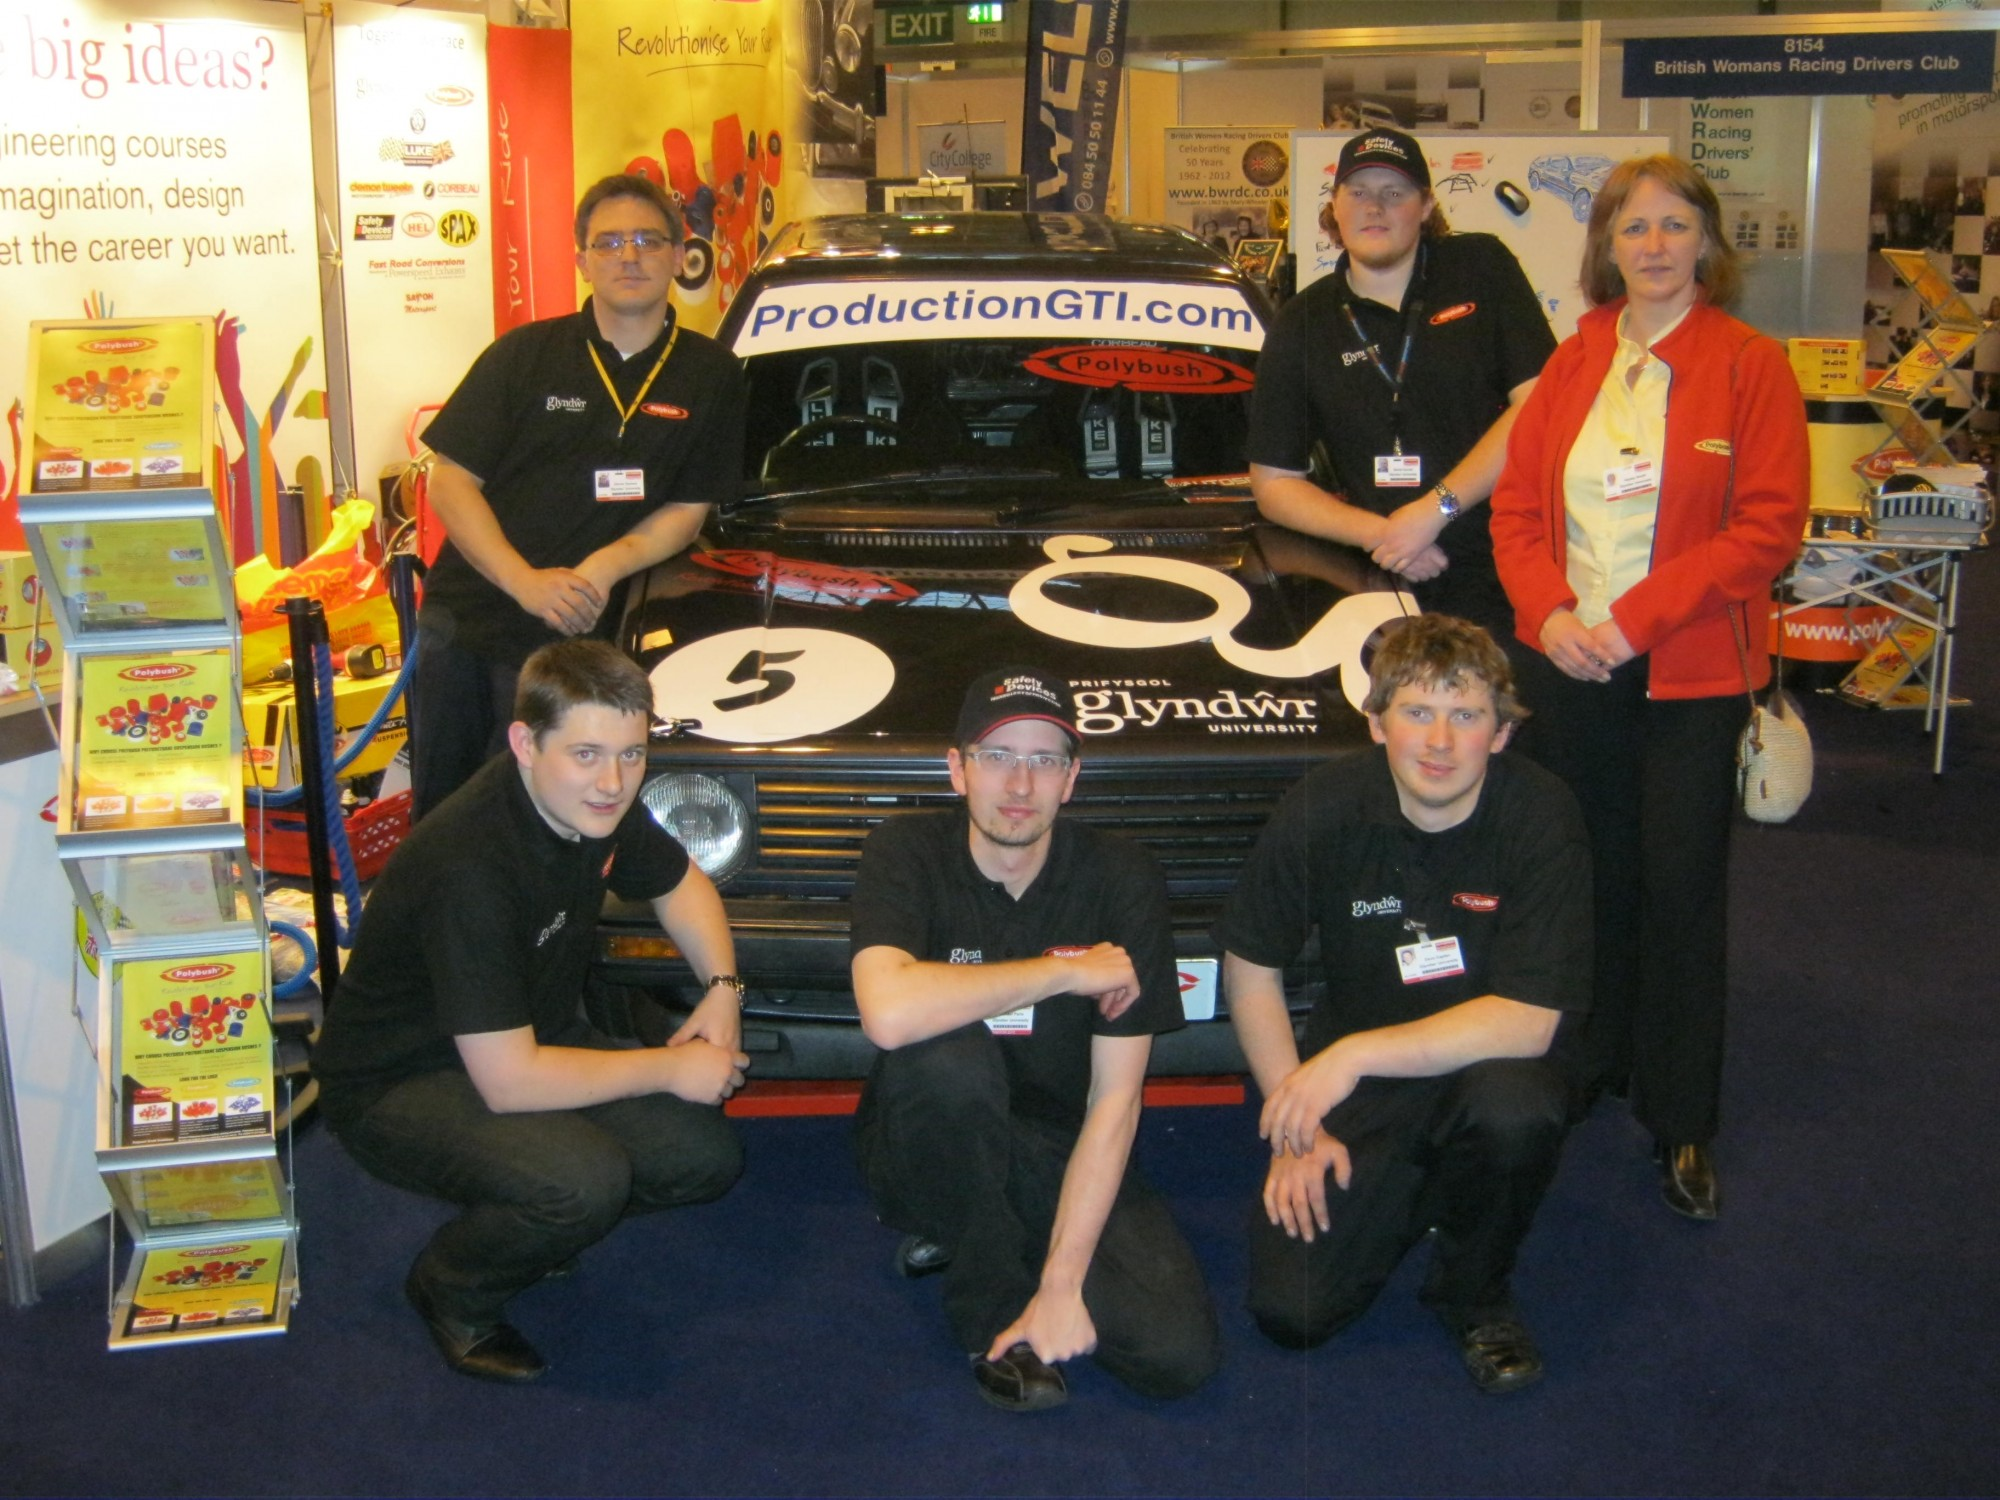 Autosport 2012 Polybush and Glyndwr working together we can race